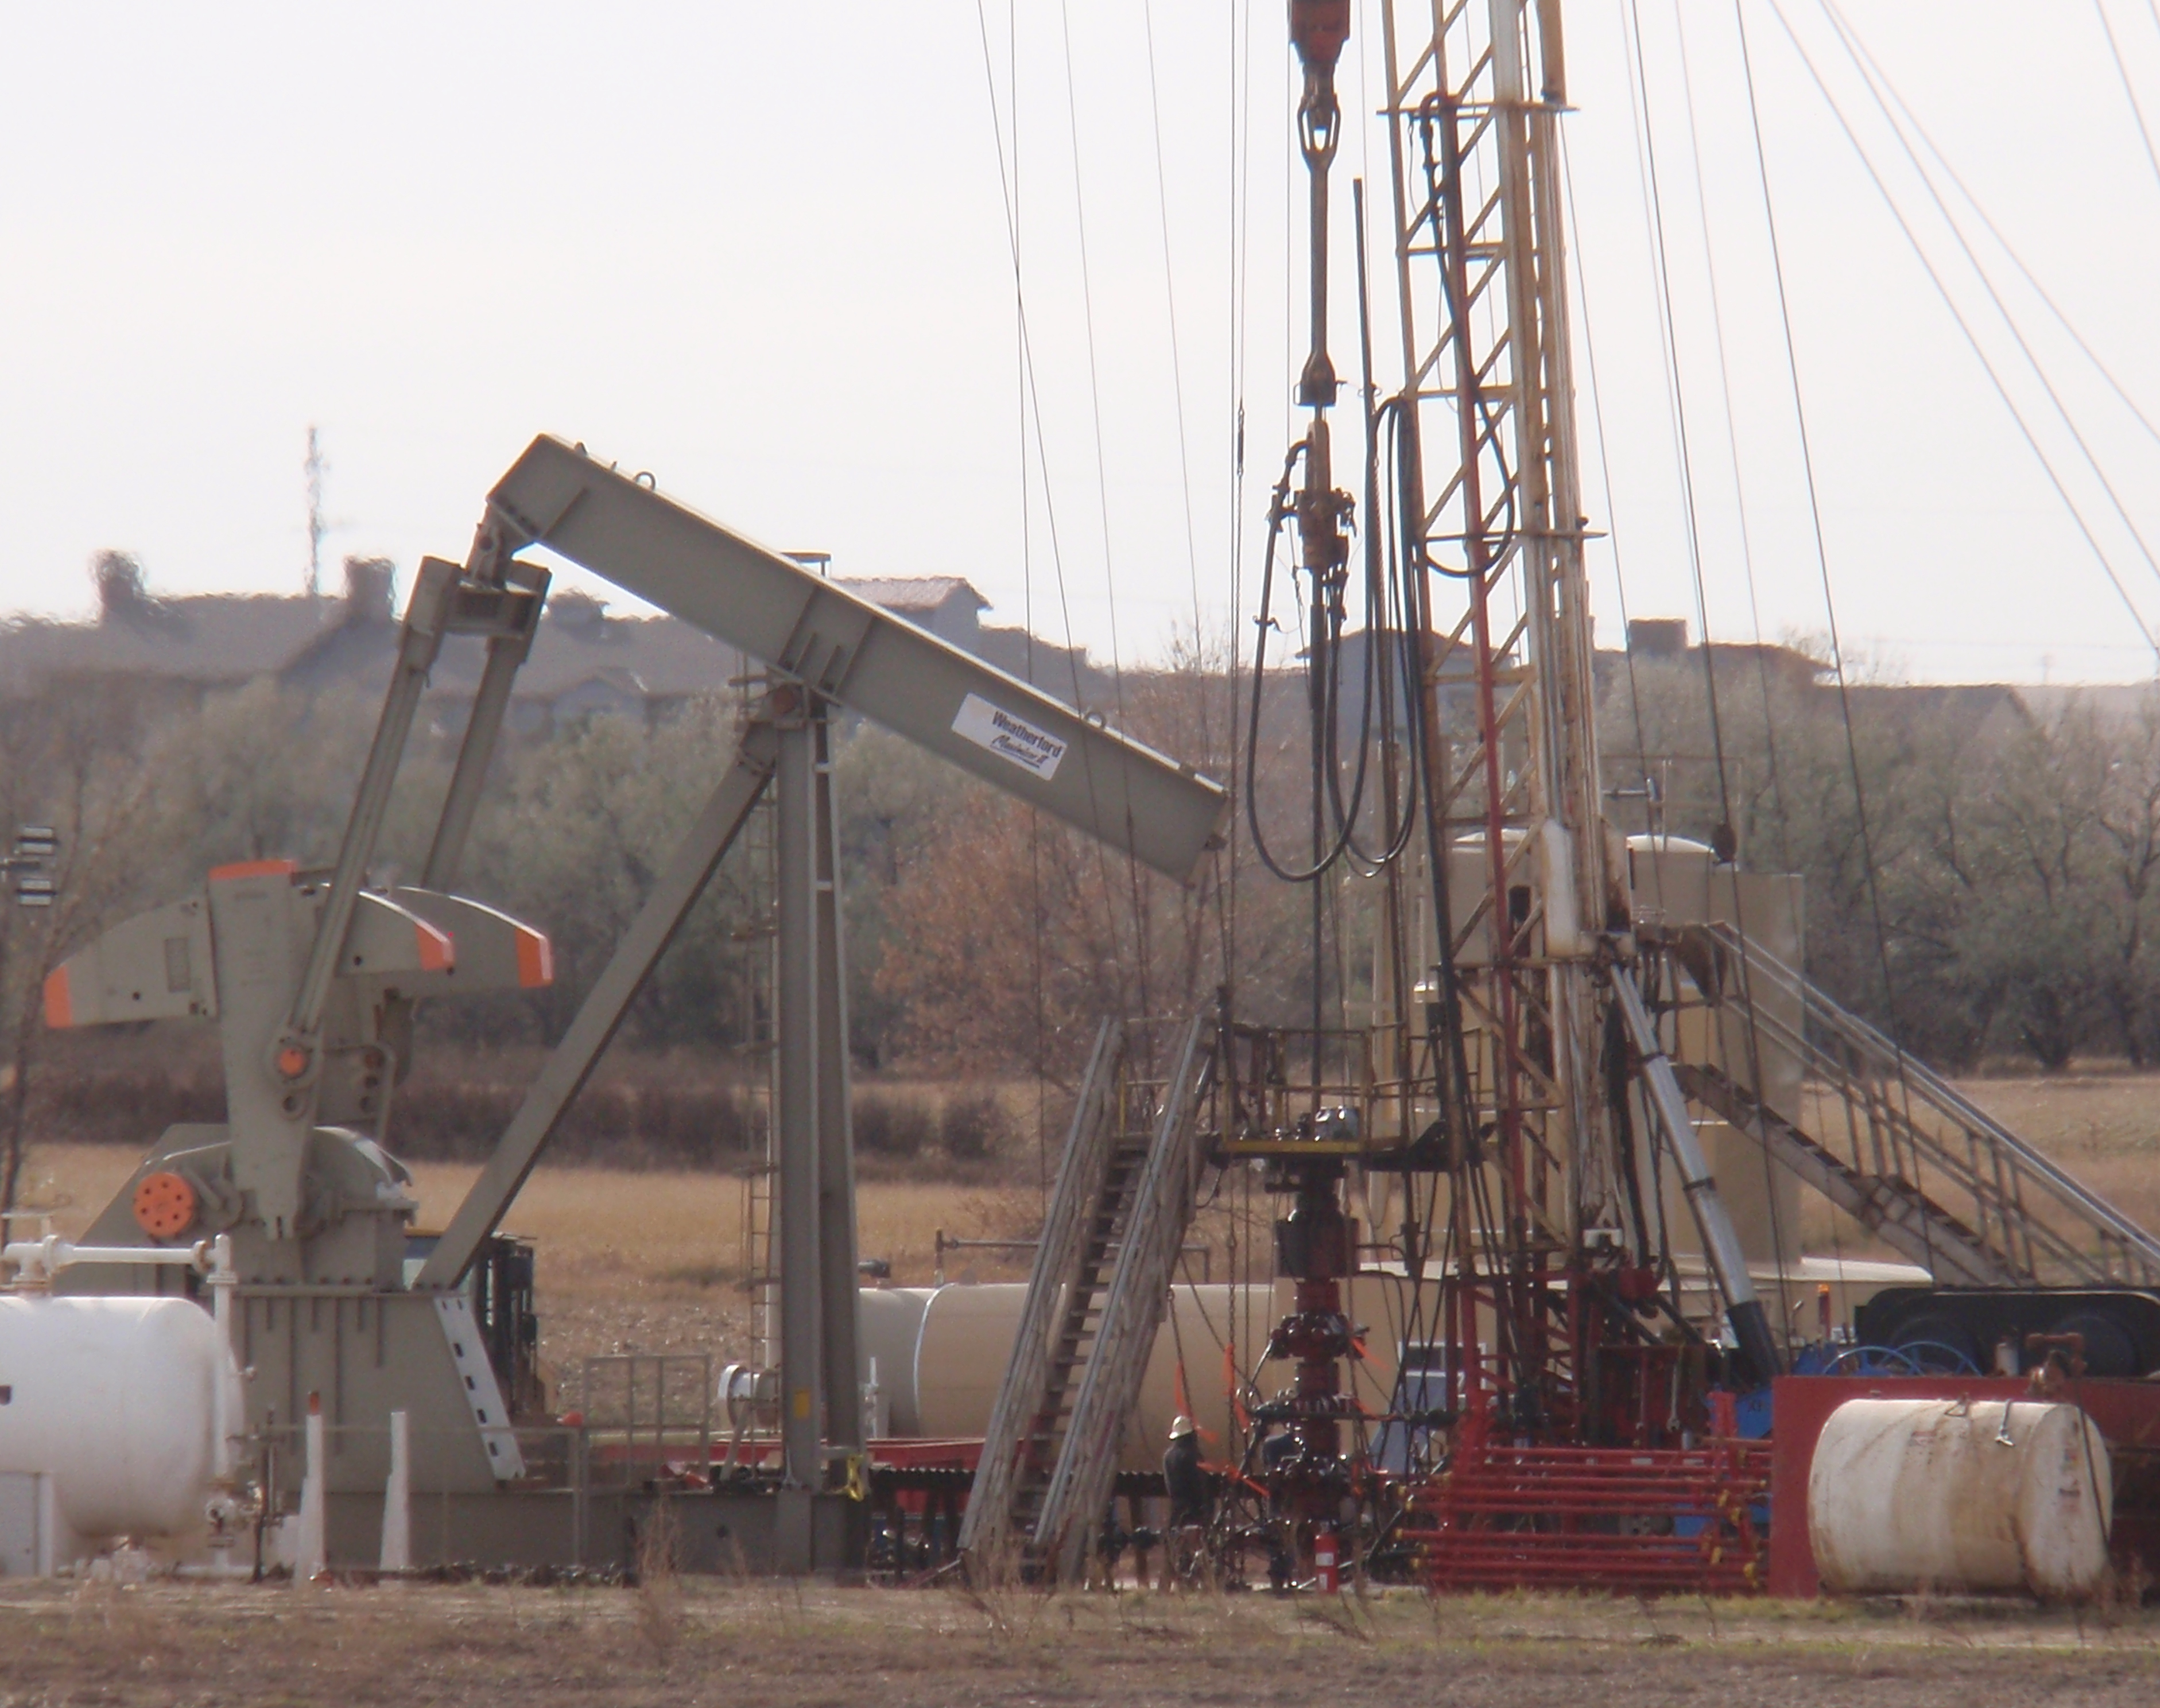 Closeup of workover rig. Photo by James Ulvog.